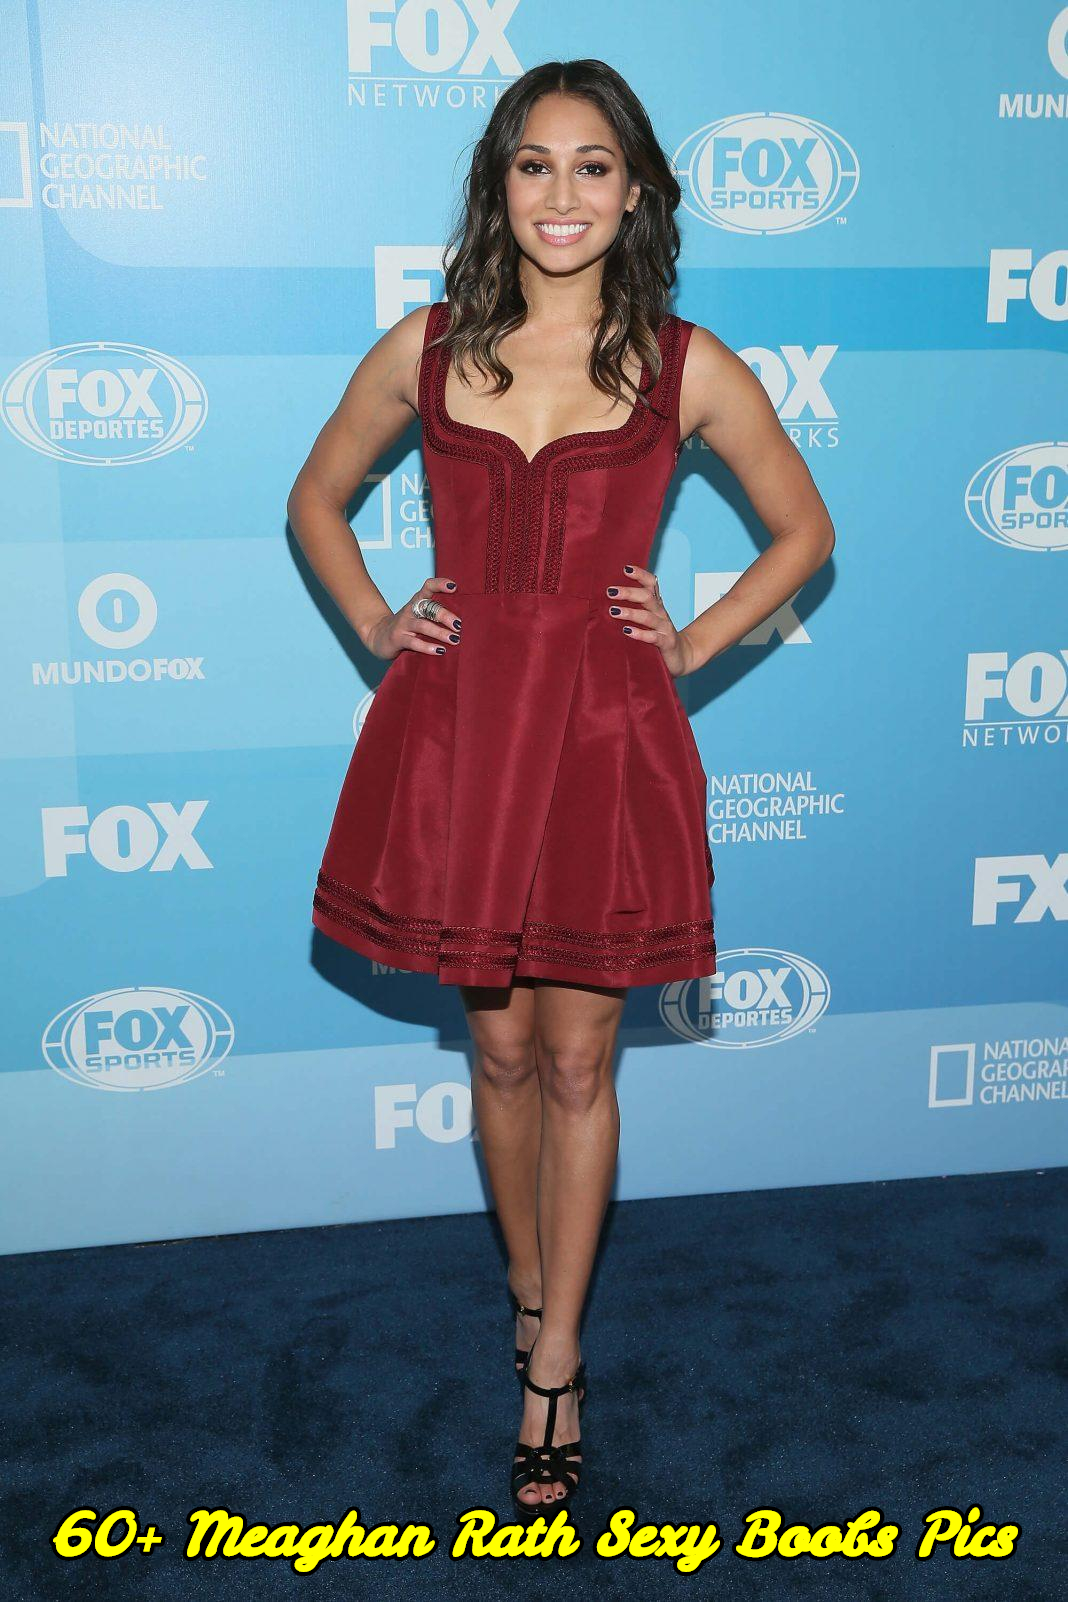 Meaghan Rath sexy boobs pics